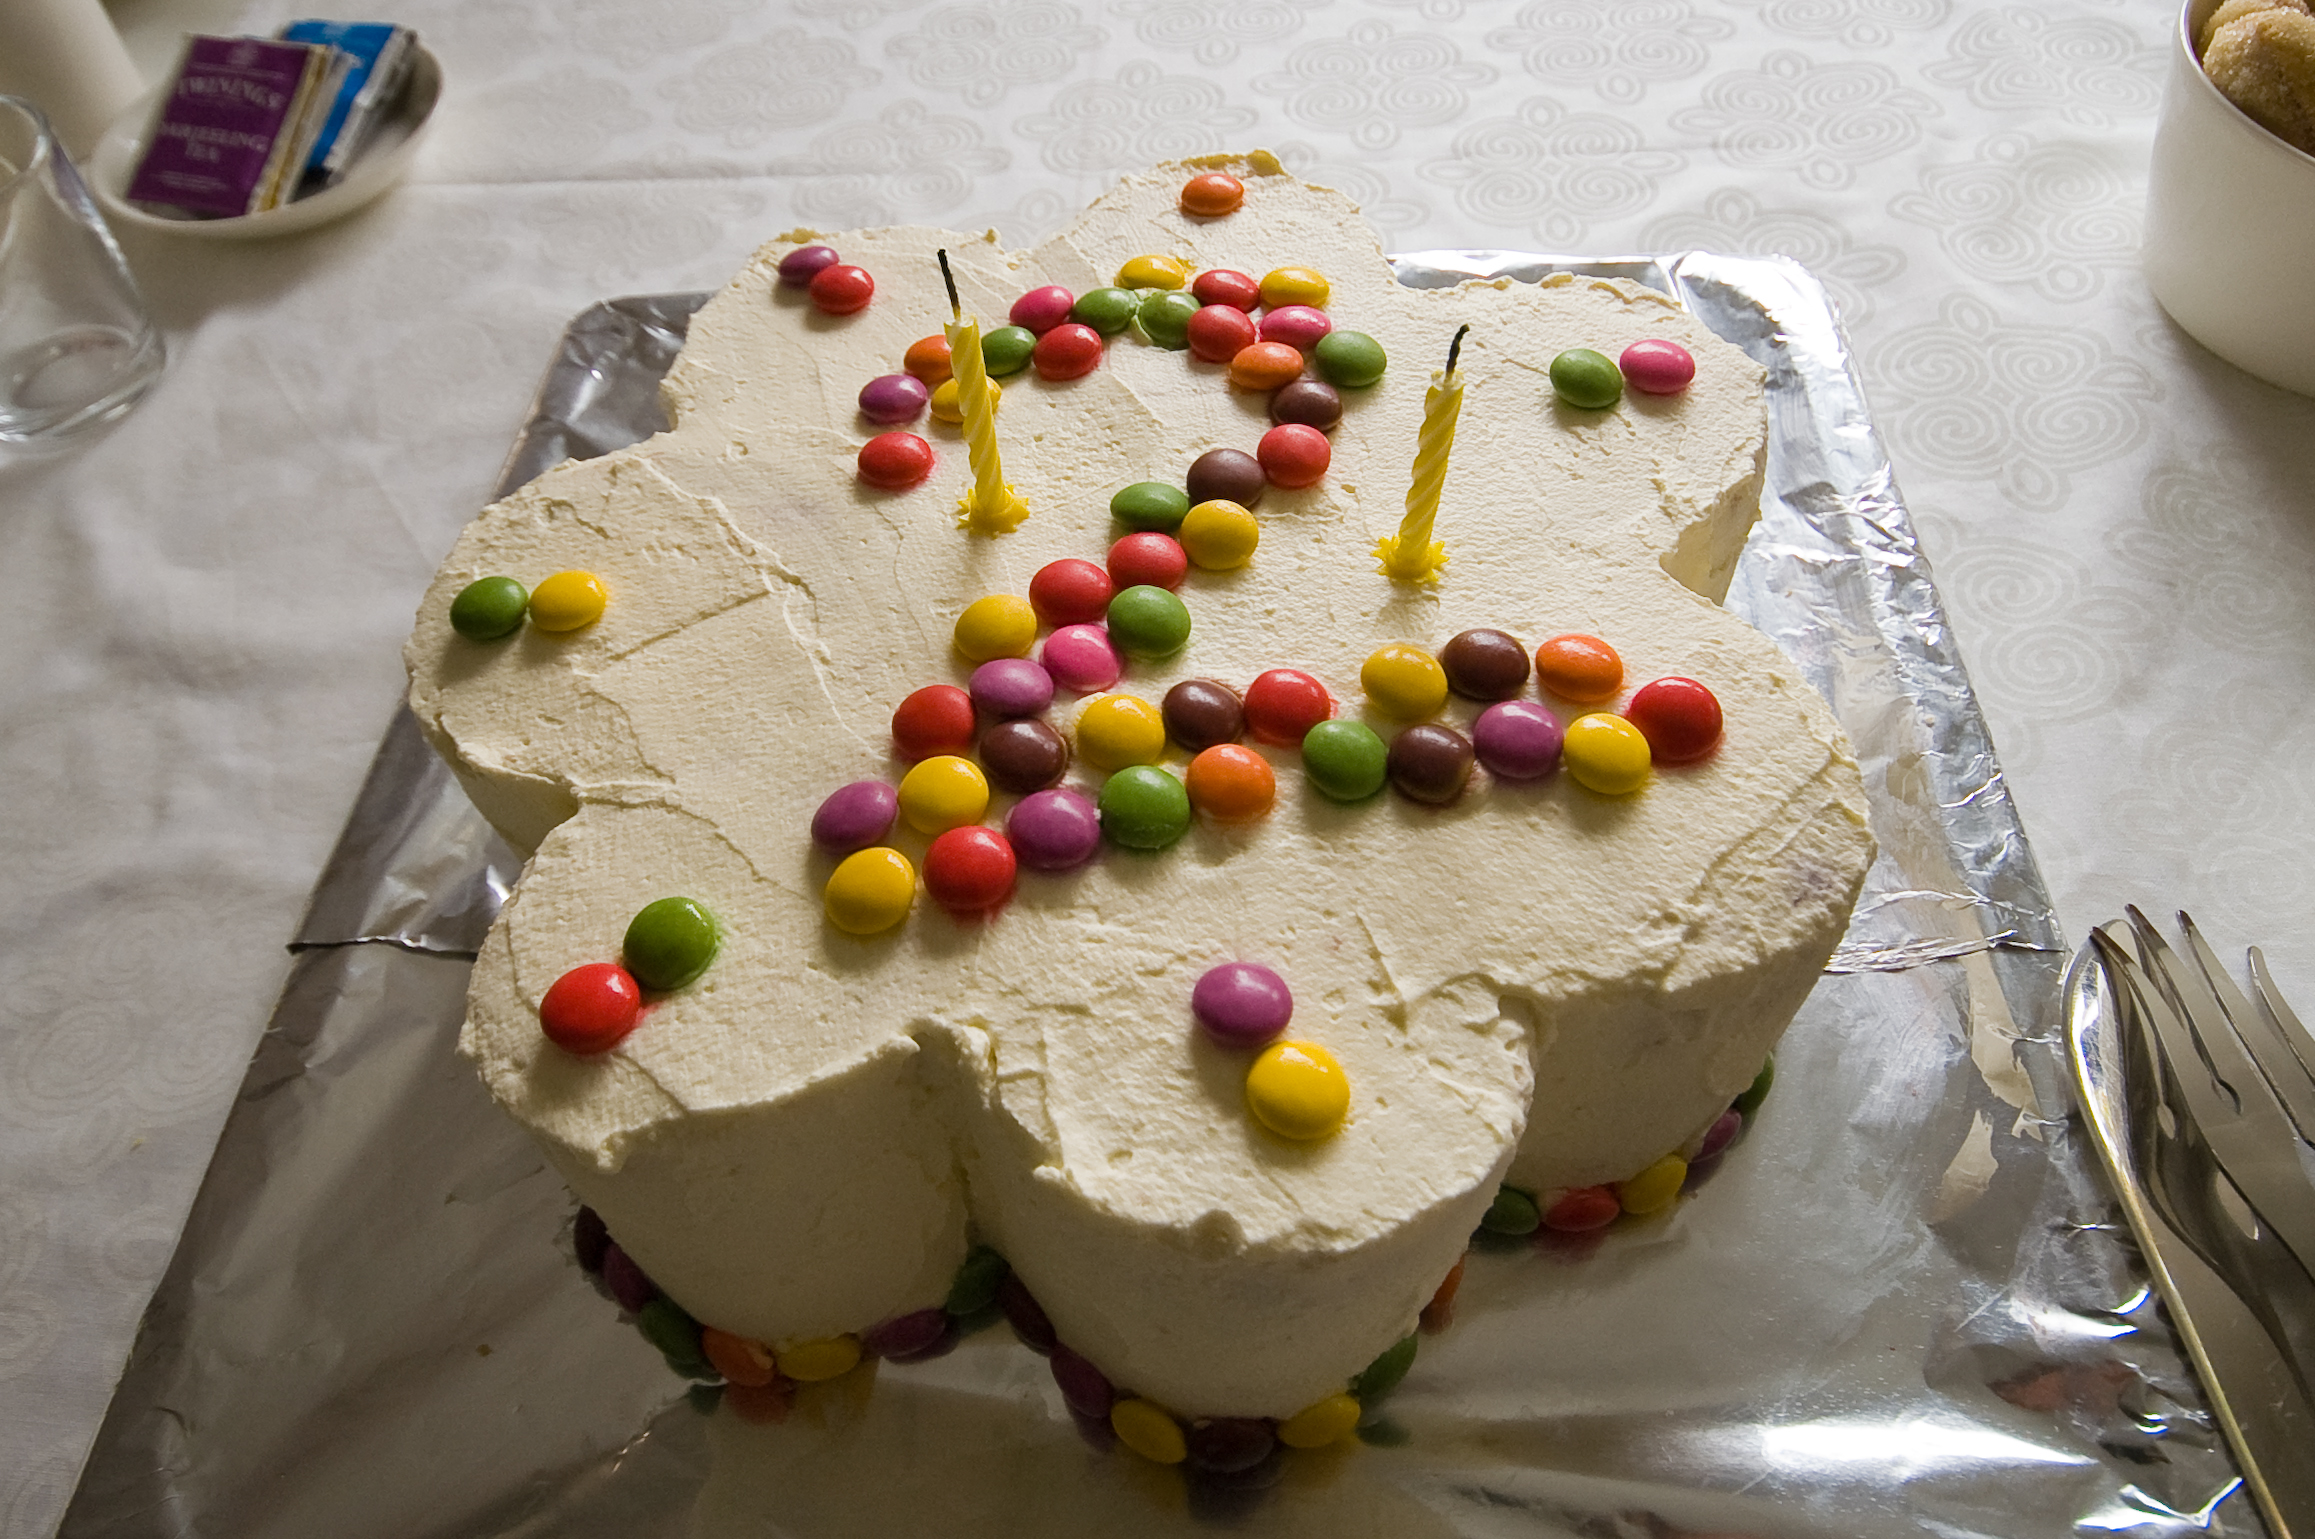 File:Birthday Cake with 2.jpg - Wikimedia Commons